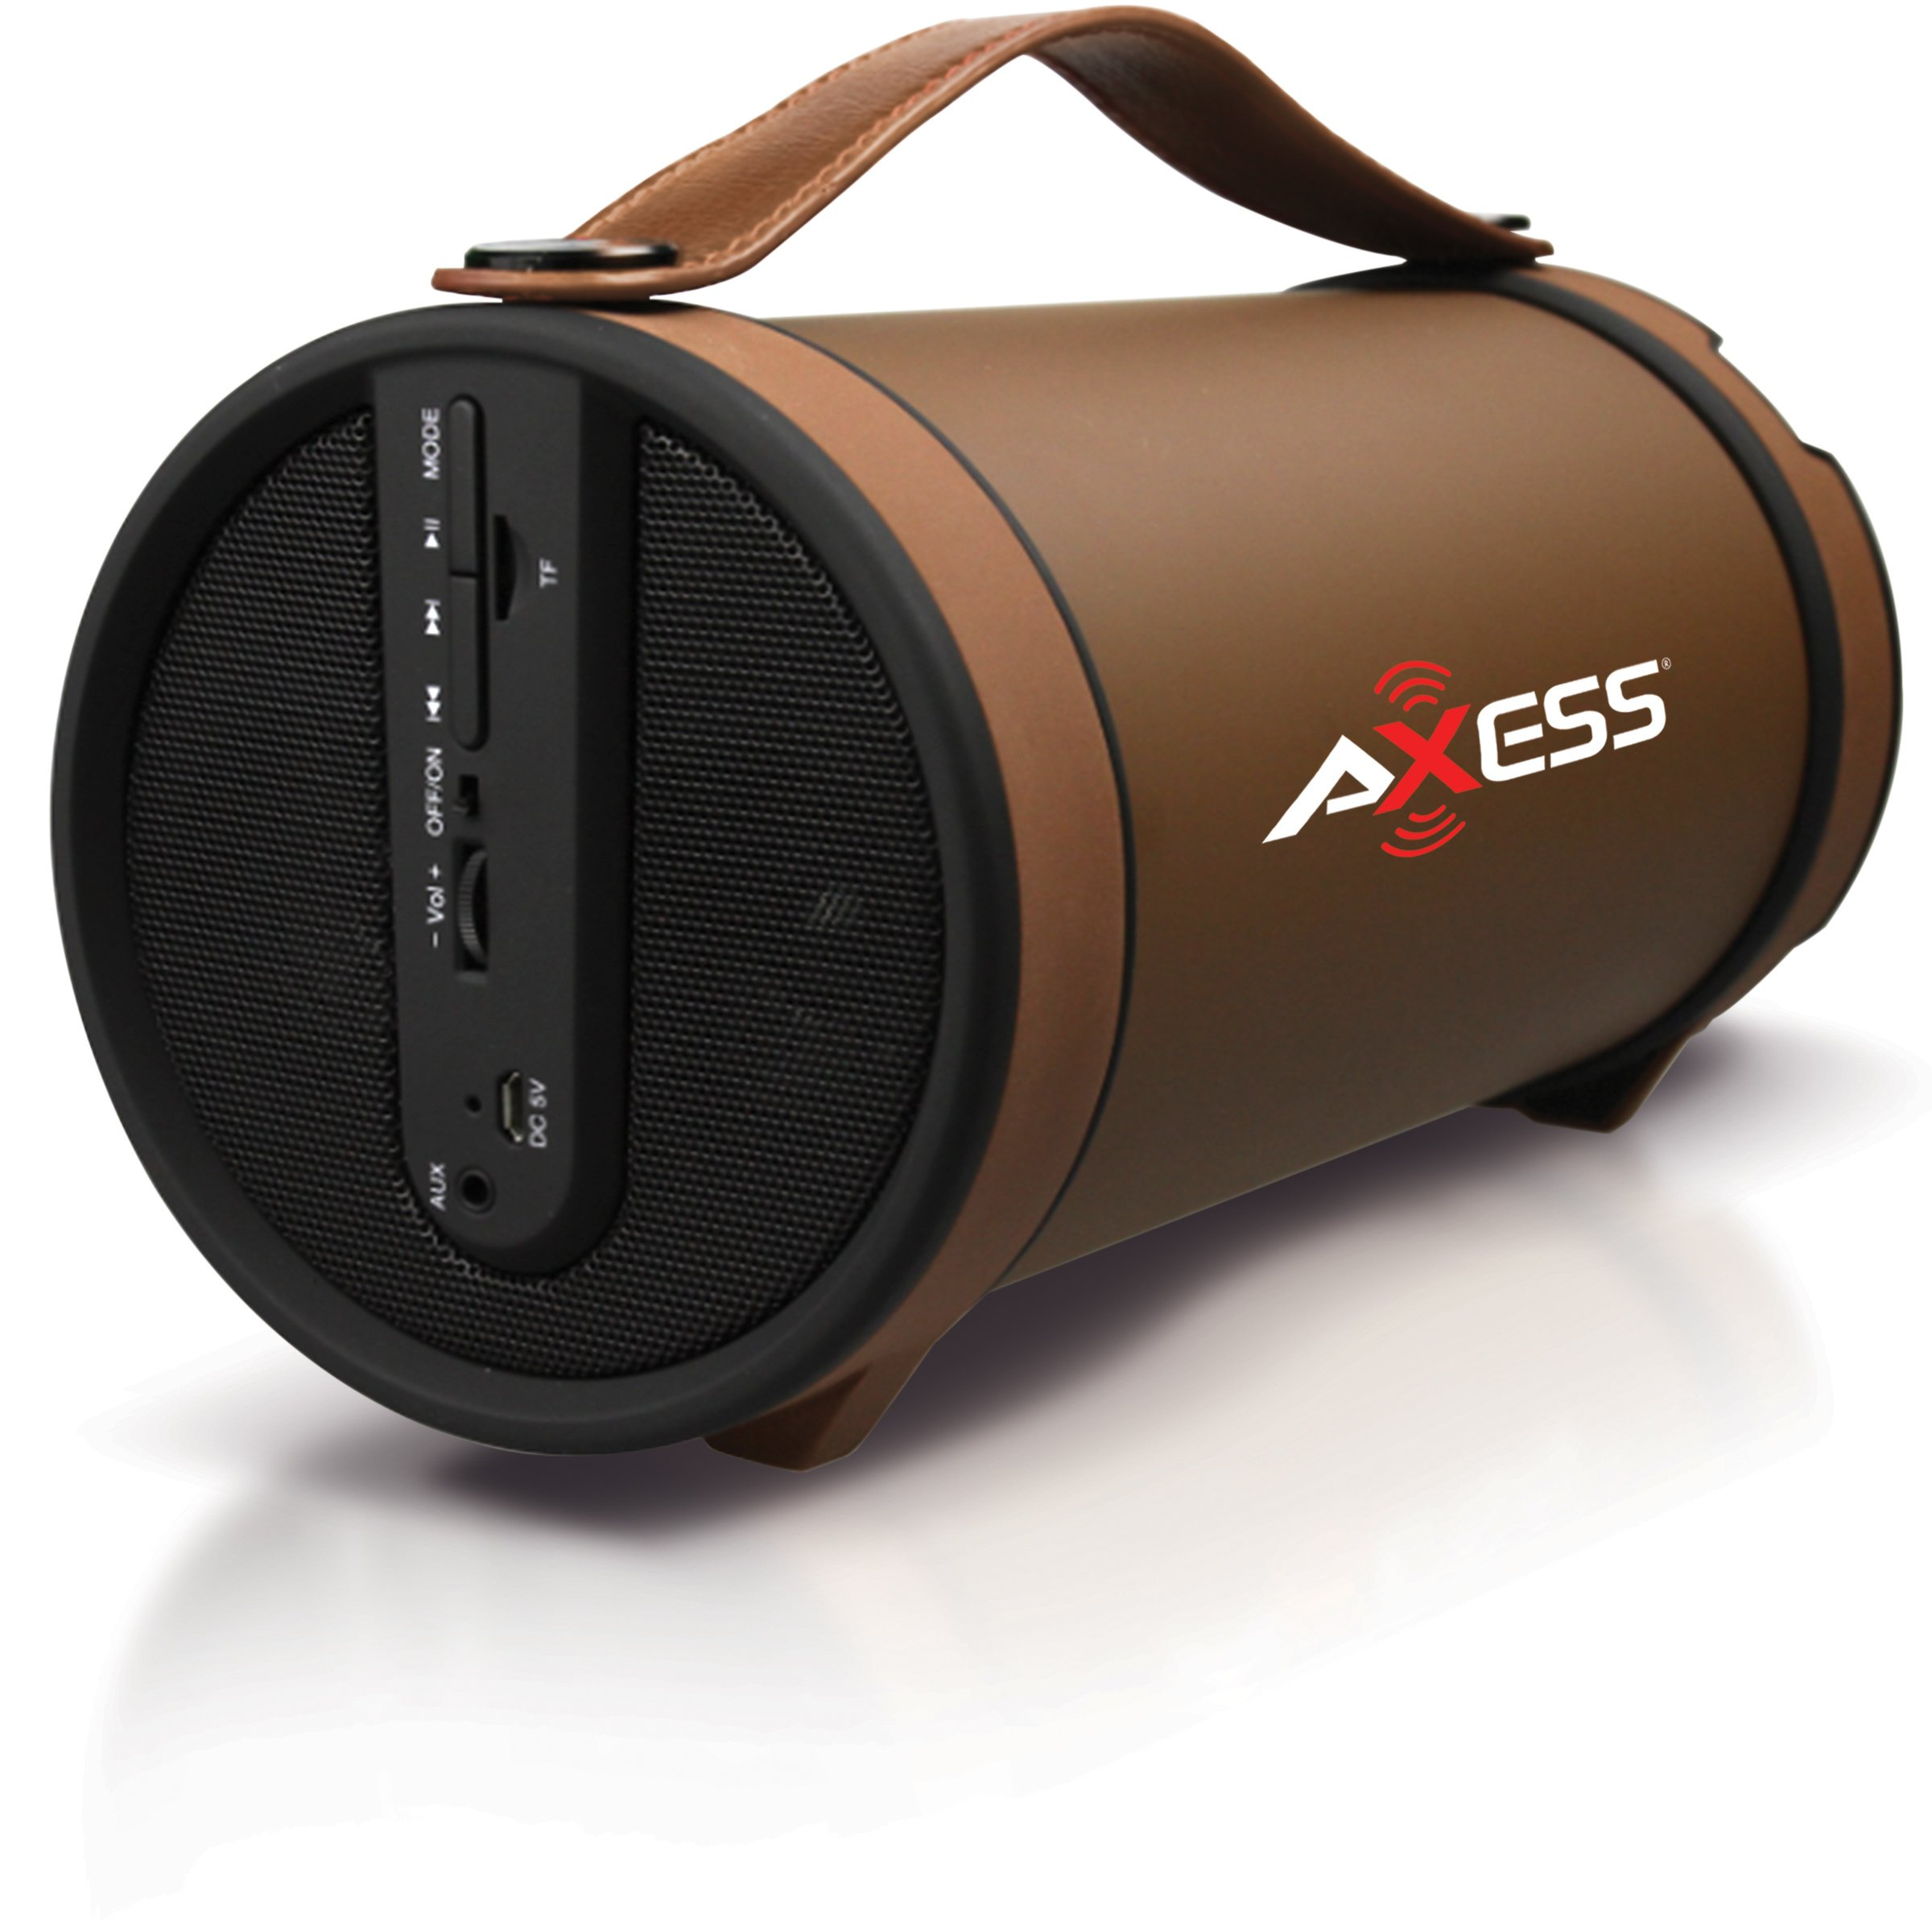 Axess Bluetooth Media Speaker with USB, SD, FM Radio